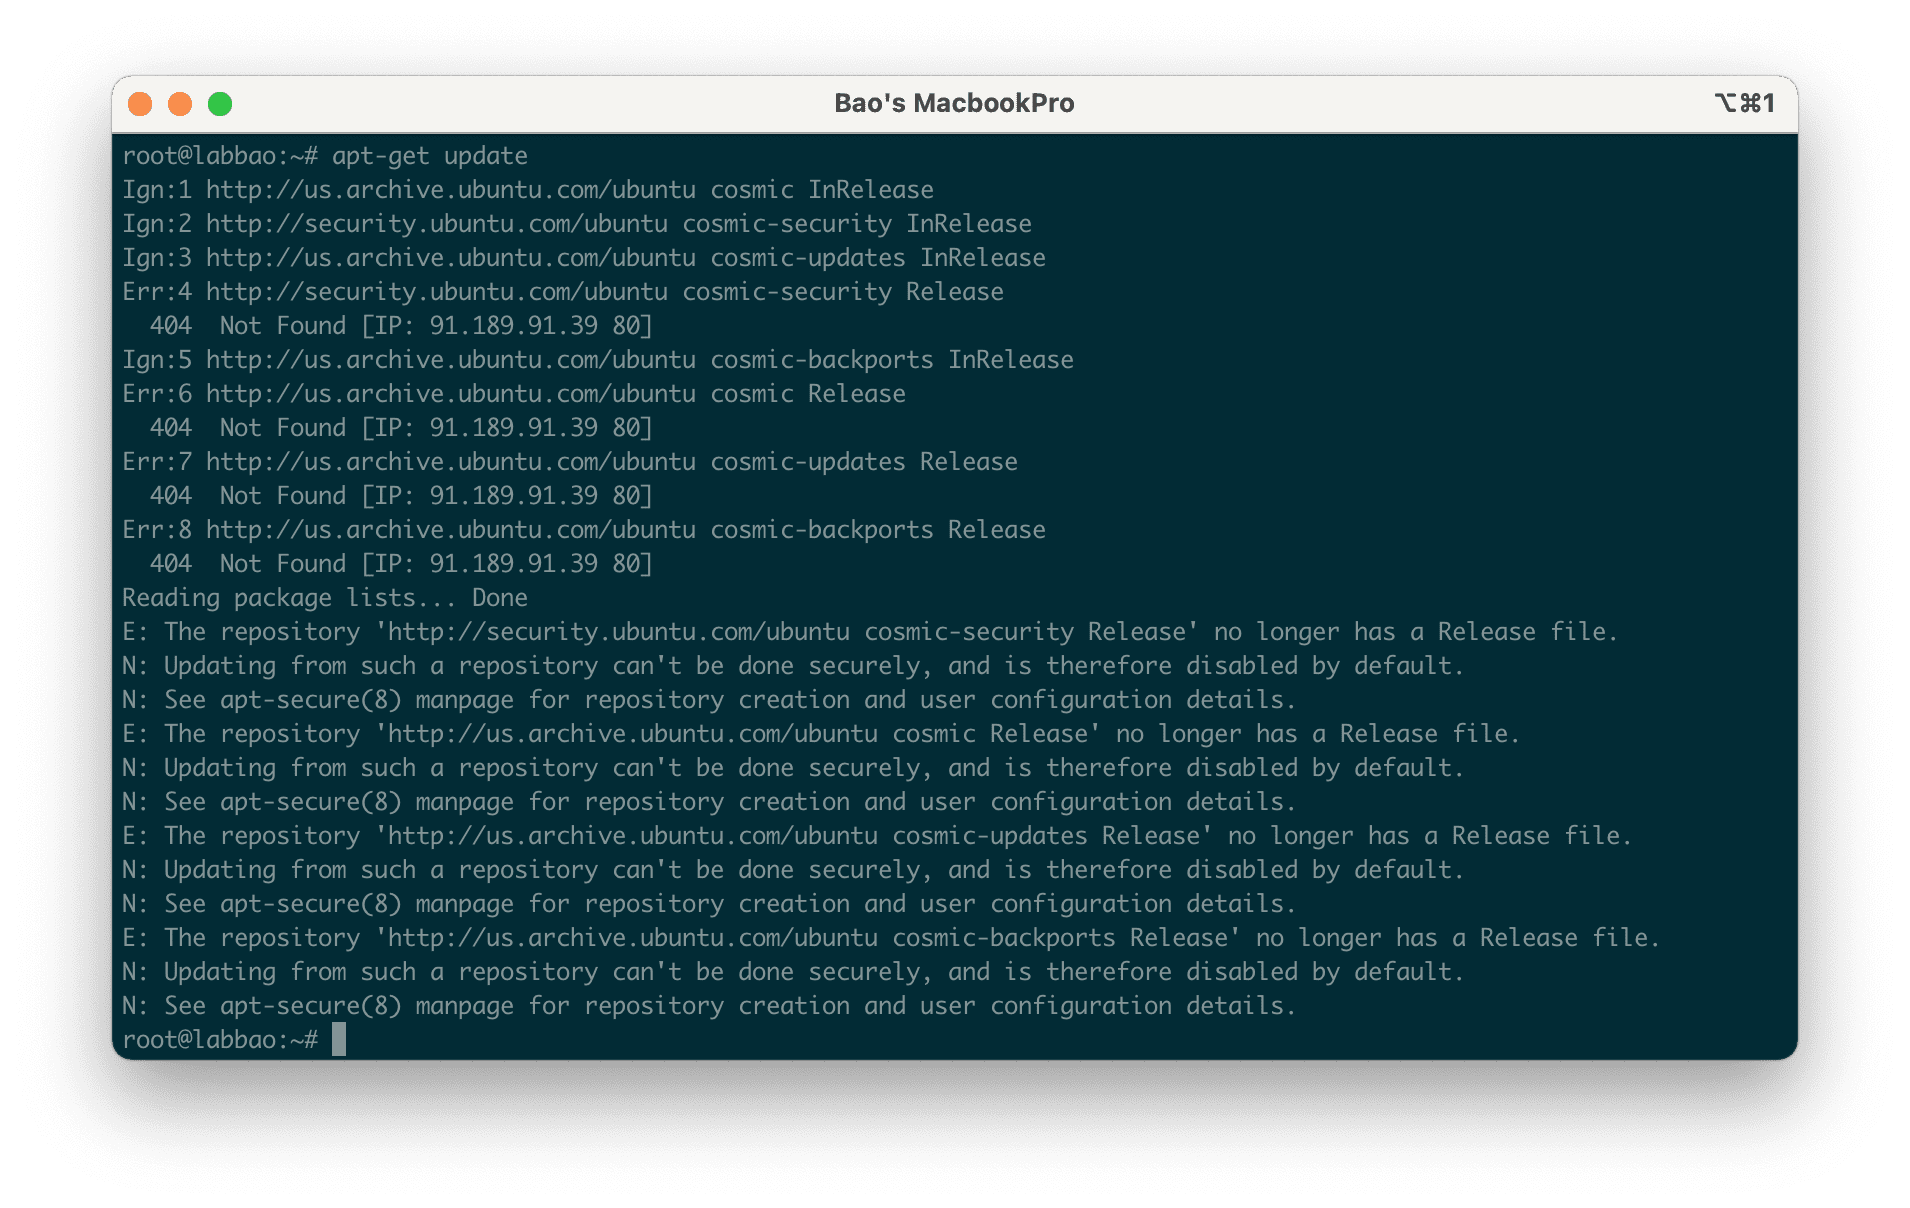 The repository no longer has a Release file - Unable to fetch some archives, maybe run apt-get update or try with --fix-missing?